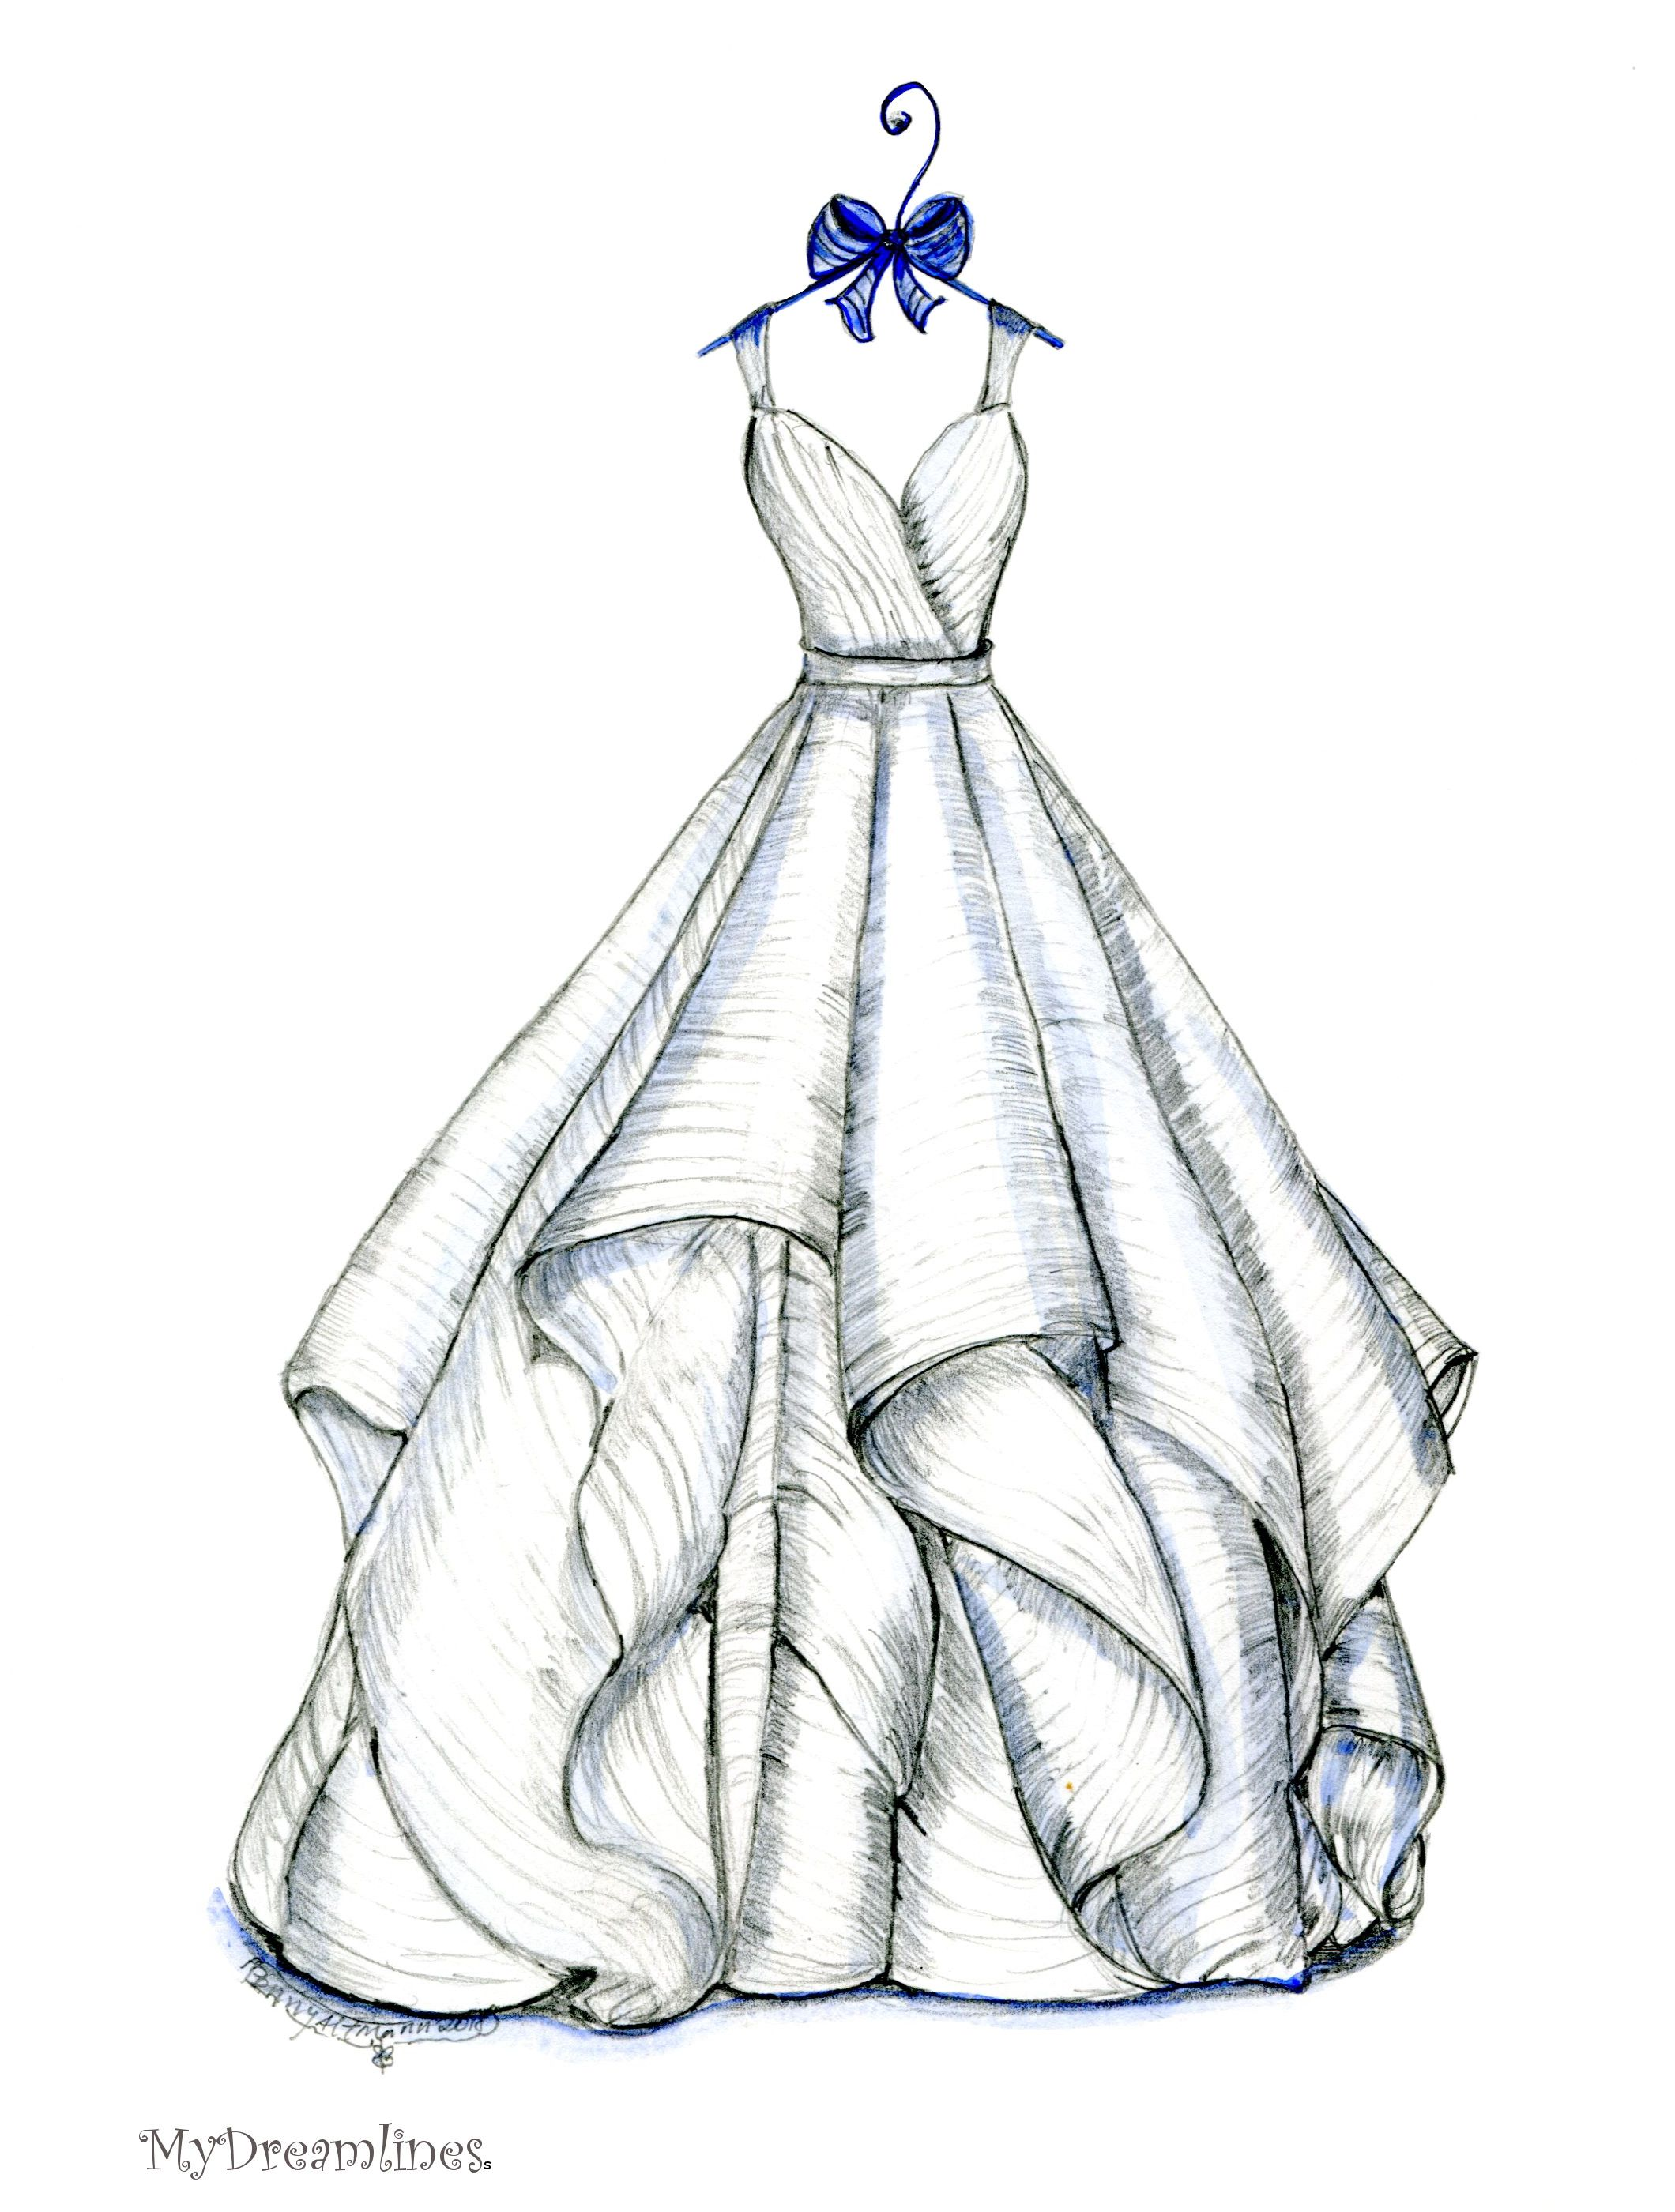 Best Gift For Wife In 2020 Unique Thoughtful Romantic Wedding Dress Drawings Wedding Dress Sketches Dress Sketches